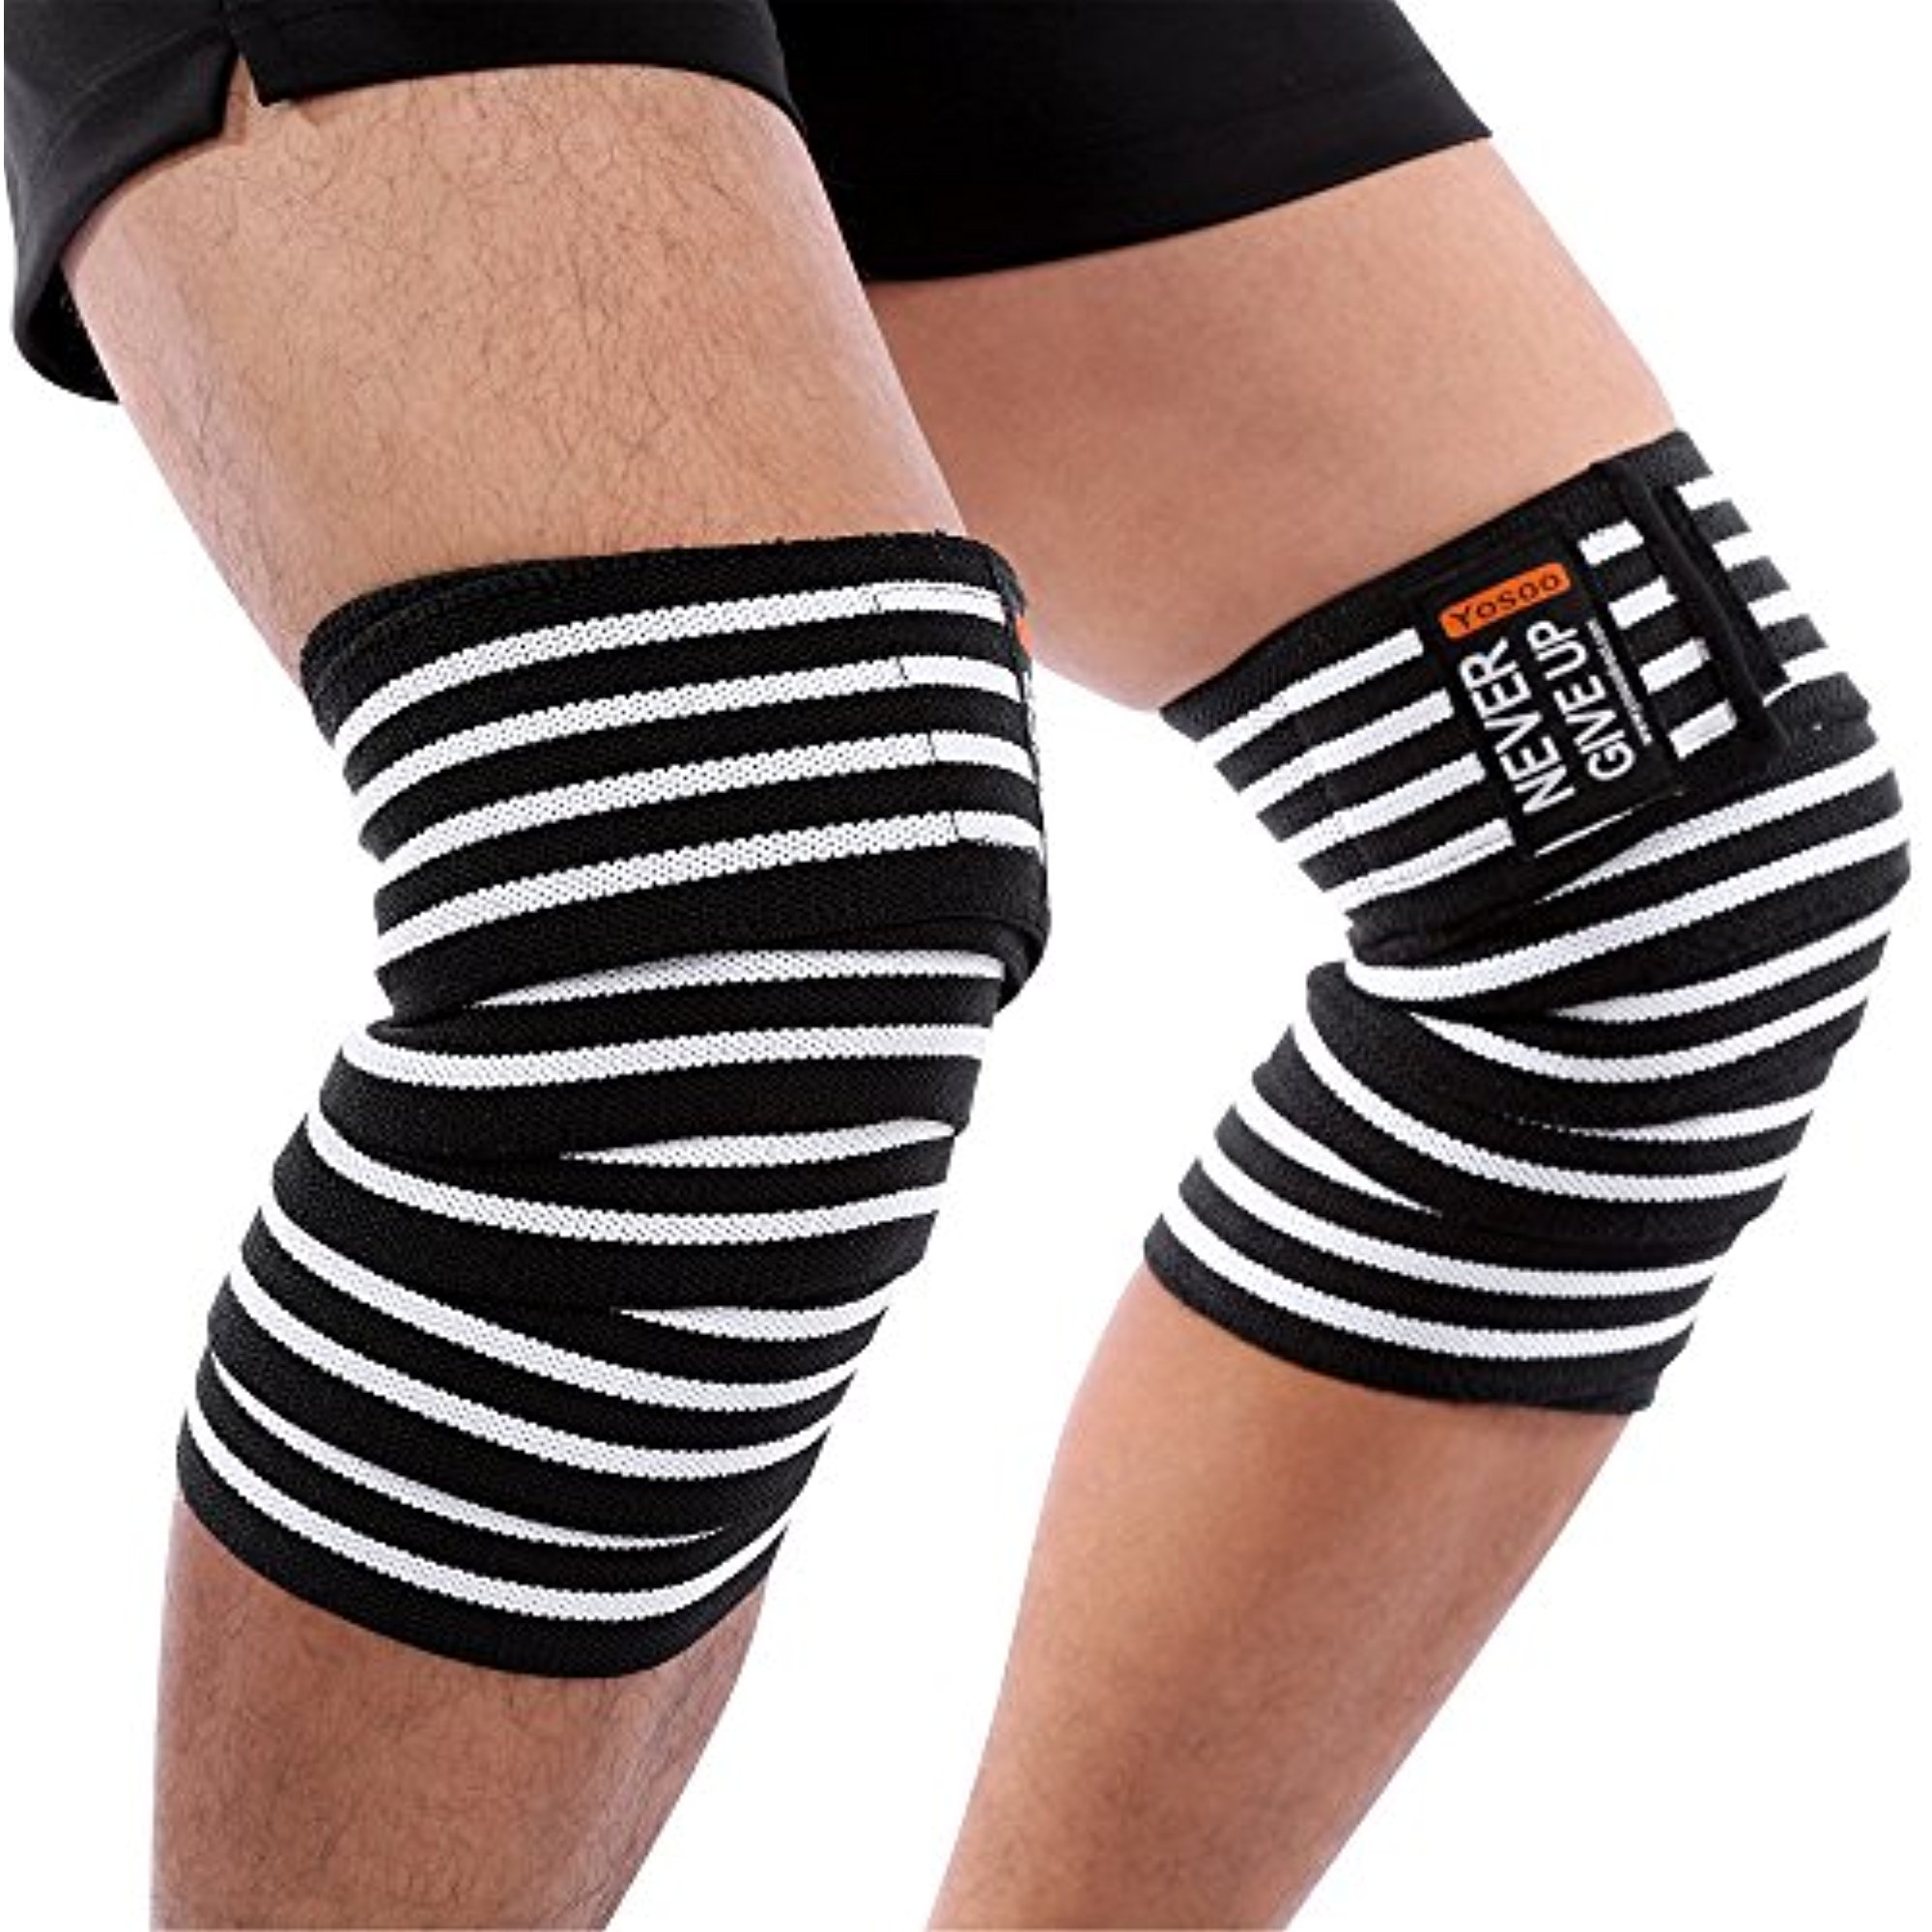 Yosoo Adjustable Sports Knee Wraps Calf Compression Patella knee Sleeve Thigh Leg Brace Elastic Support Straps